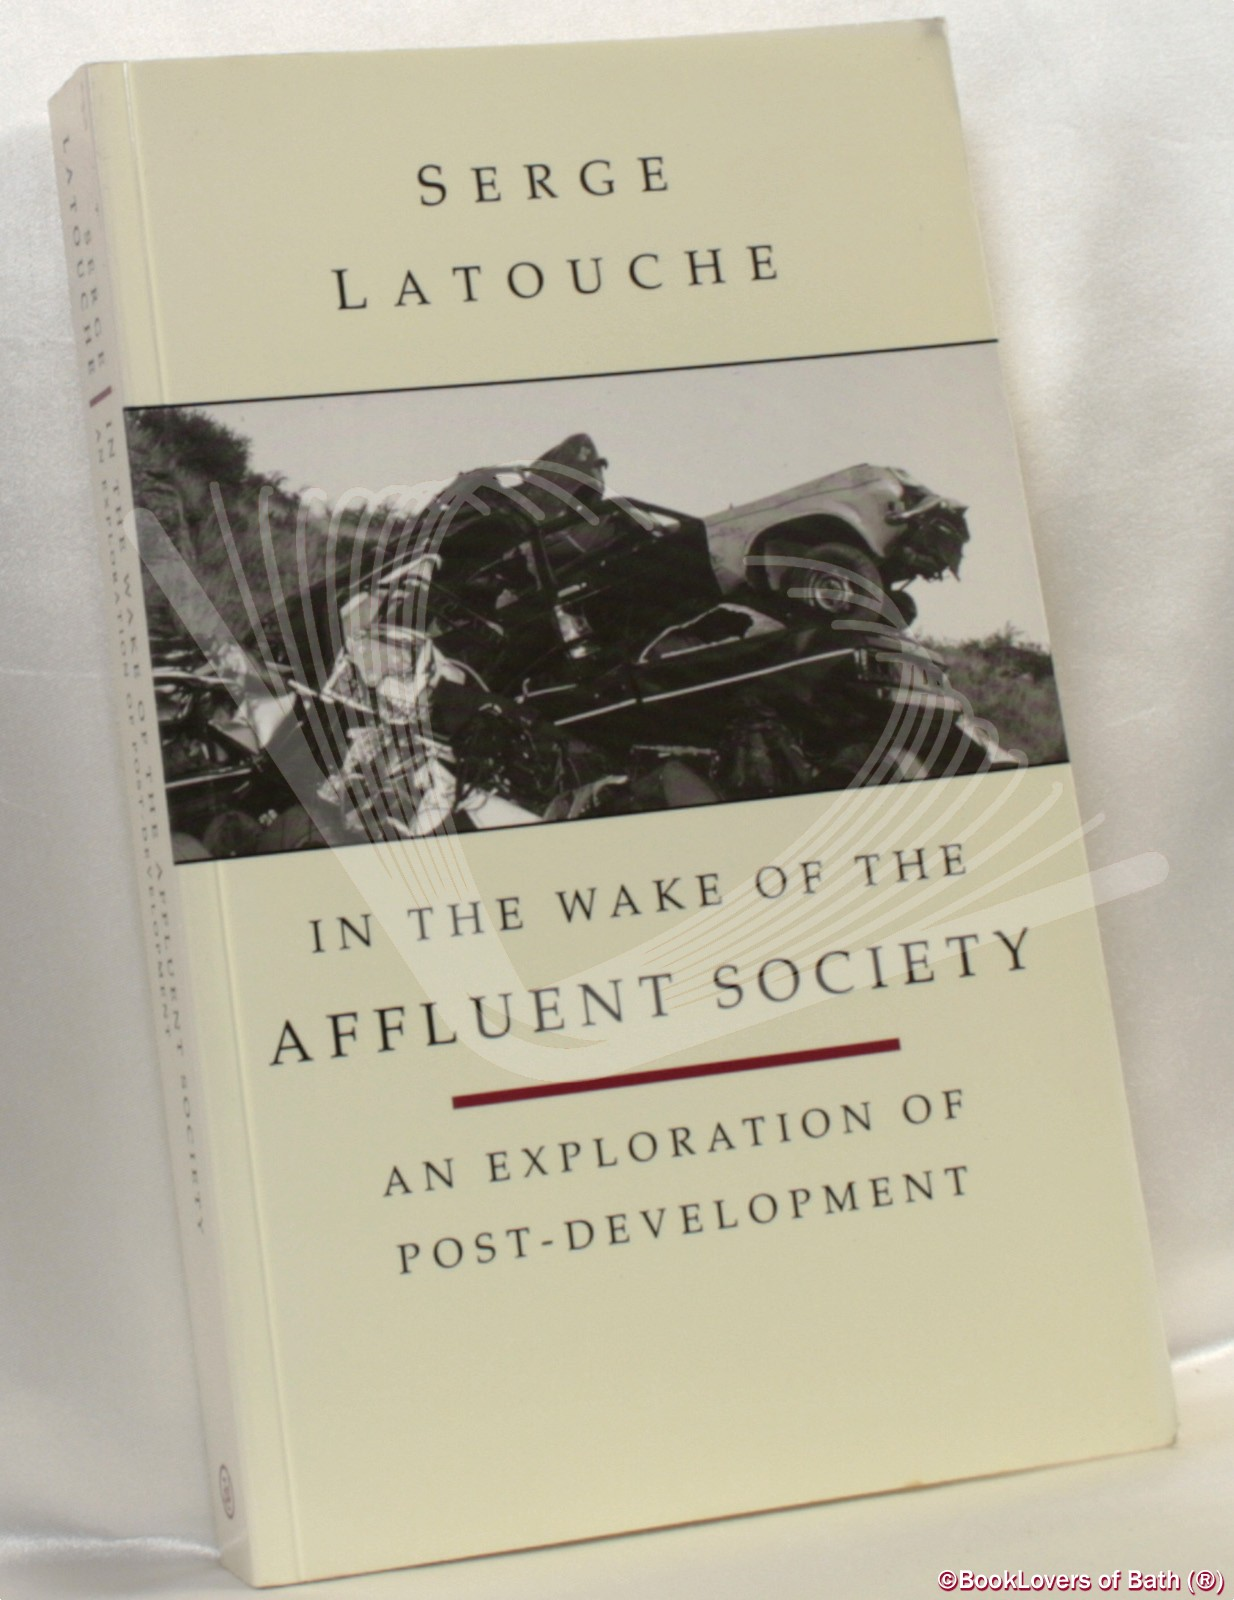 In the Wake of the Affluent Society: An Exploration of Post-development - Serge Latouche